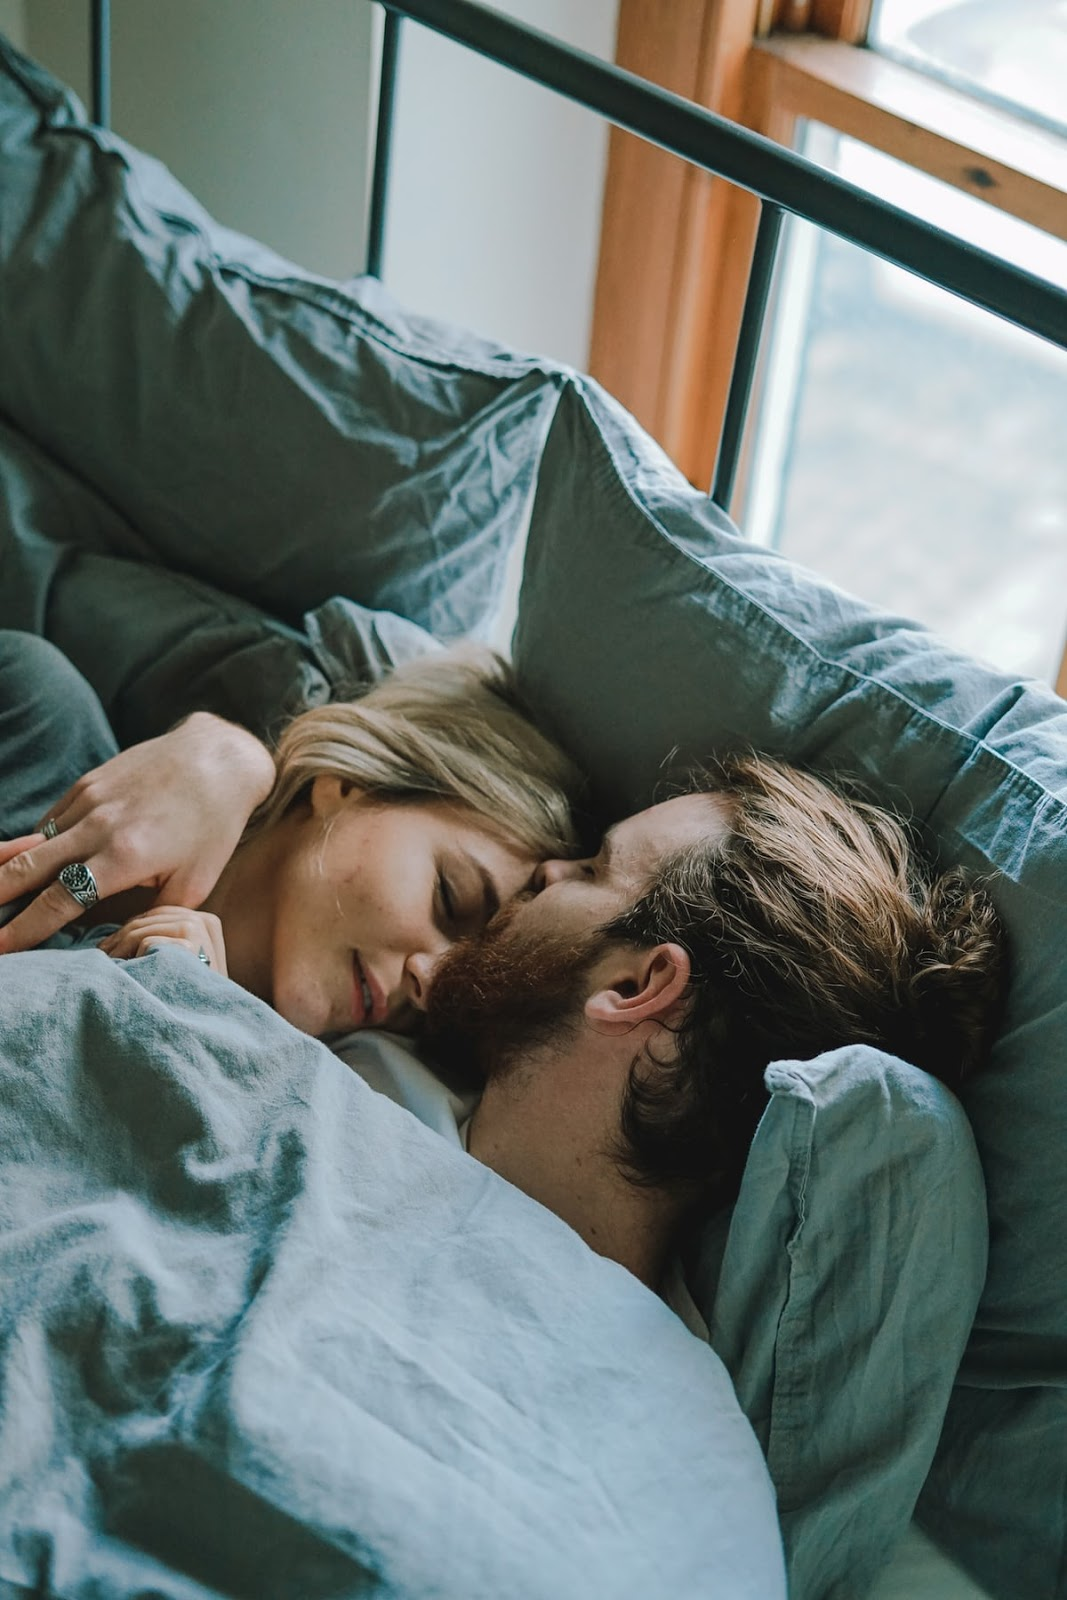 How to,benefits of sleep with partners